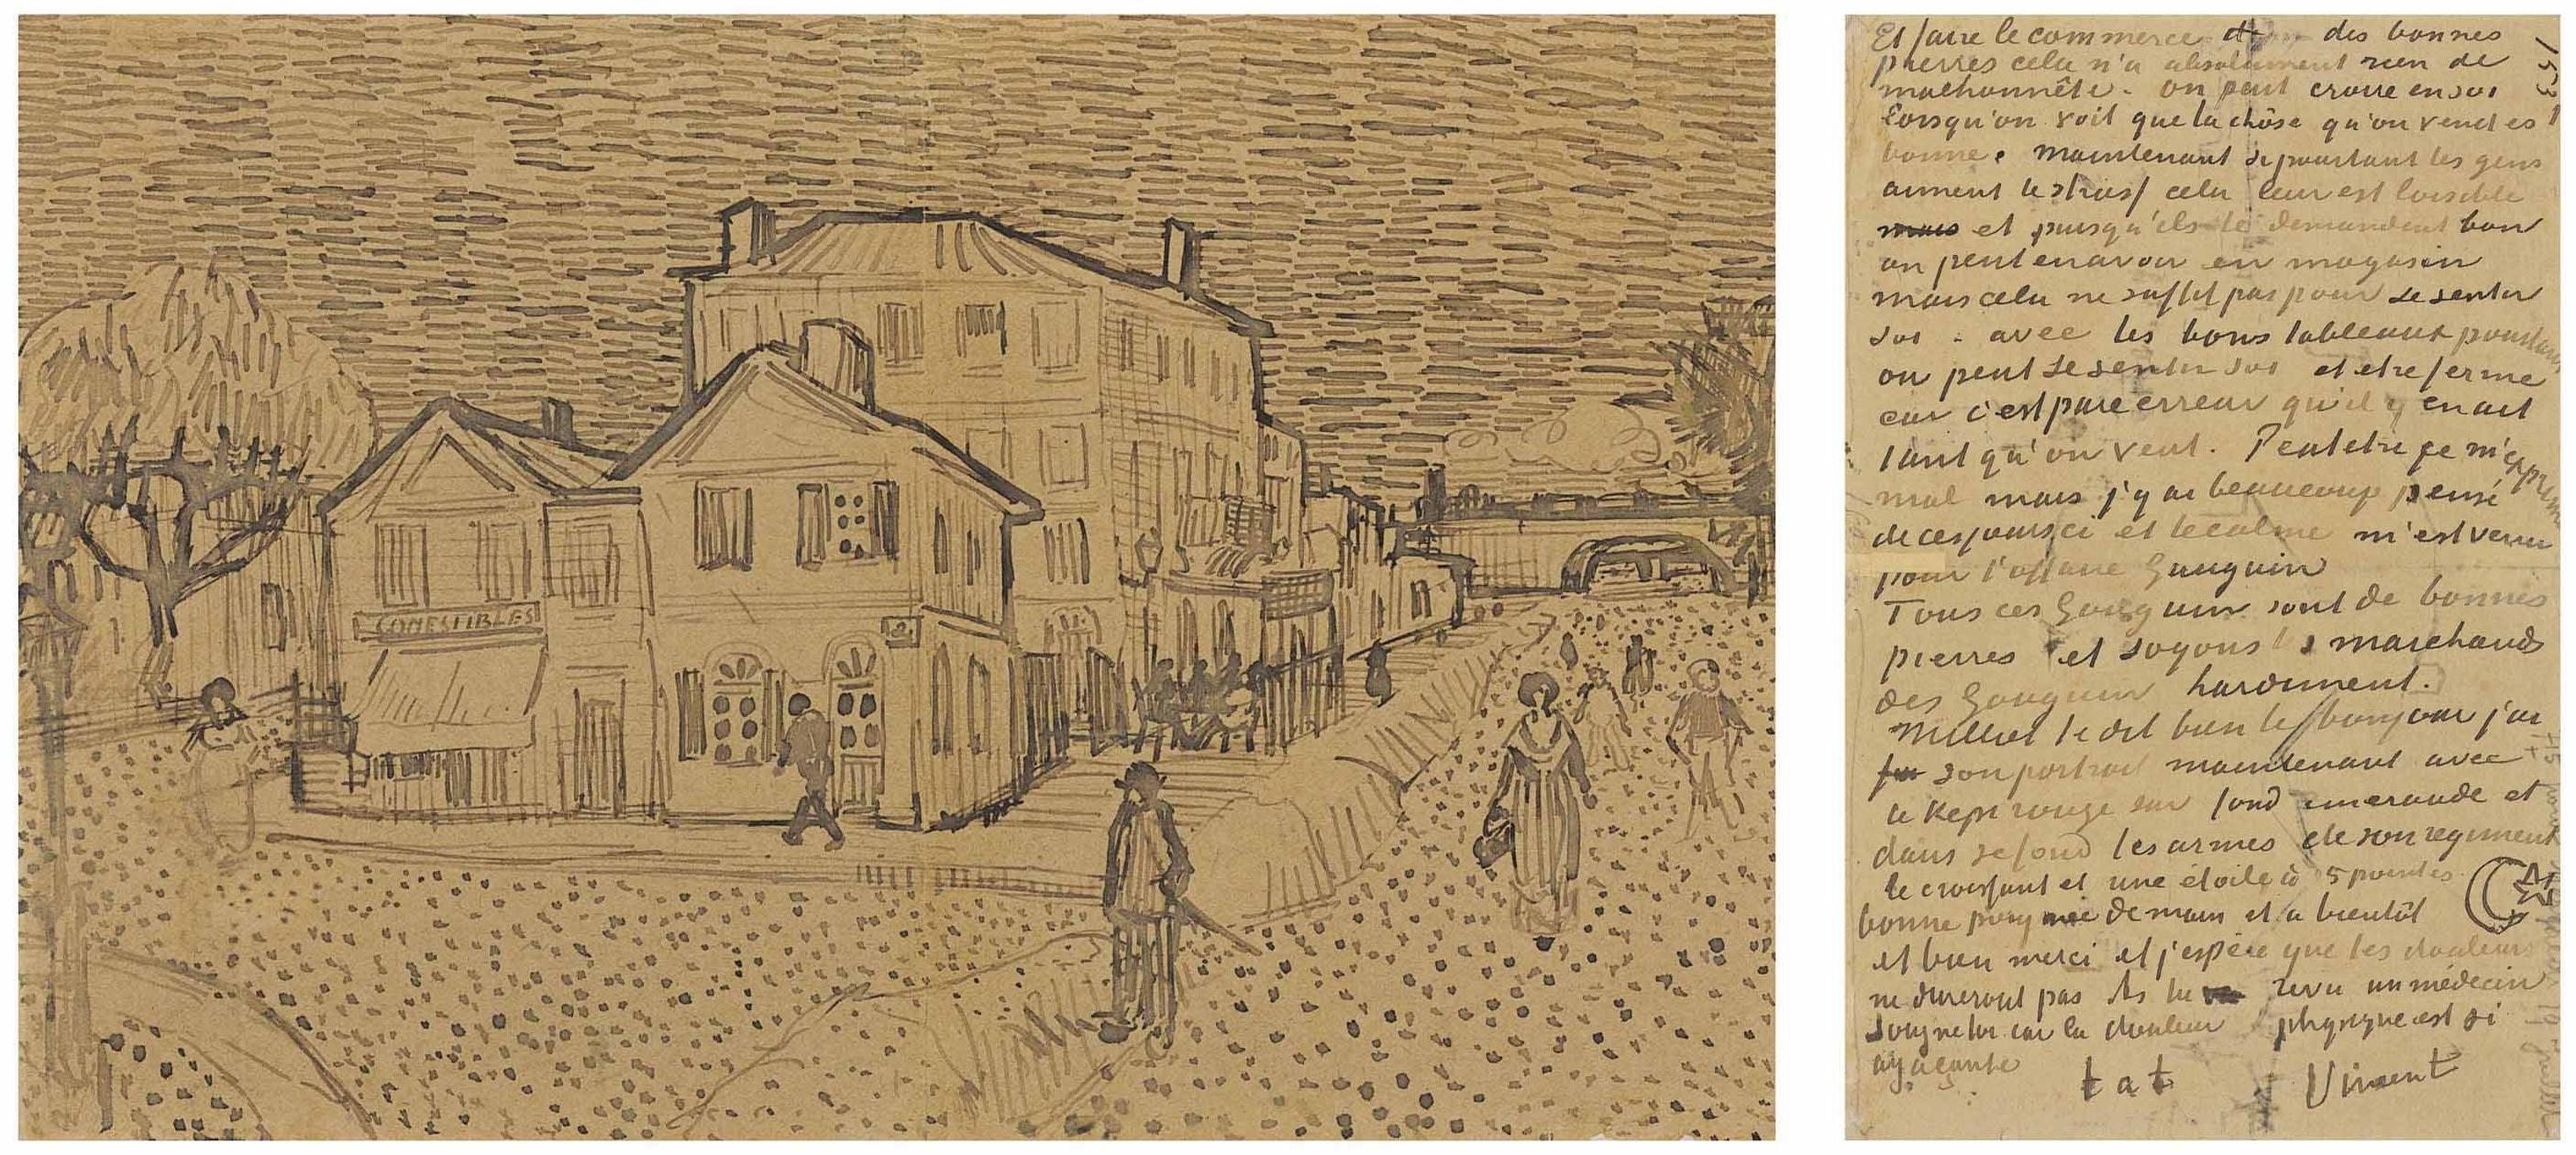 File:Vincent van Gogh - Letter VGM 491 - The Yellow House F1453 JH 1590